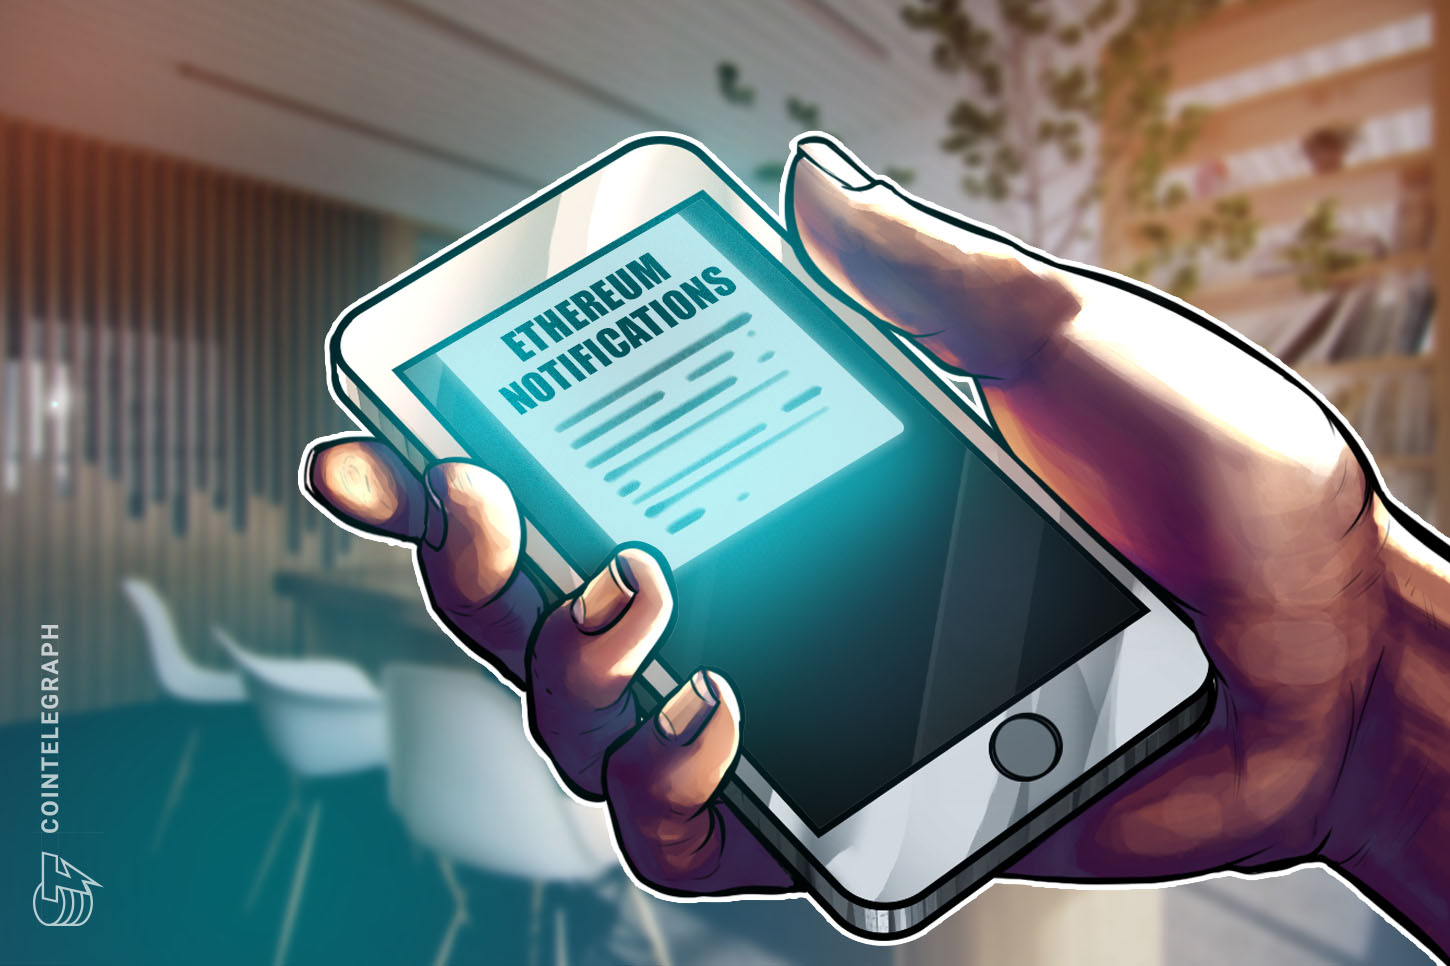 DApps can now send push notifications to Ethereum wallet users